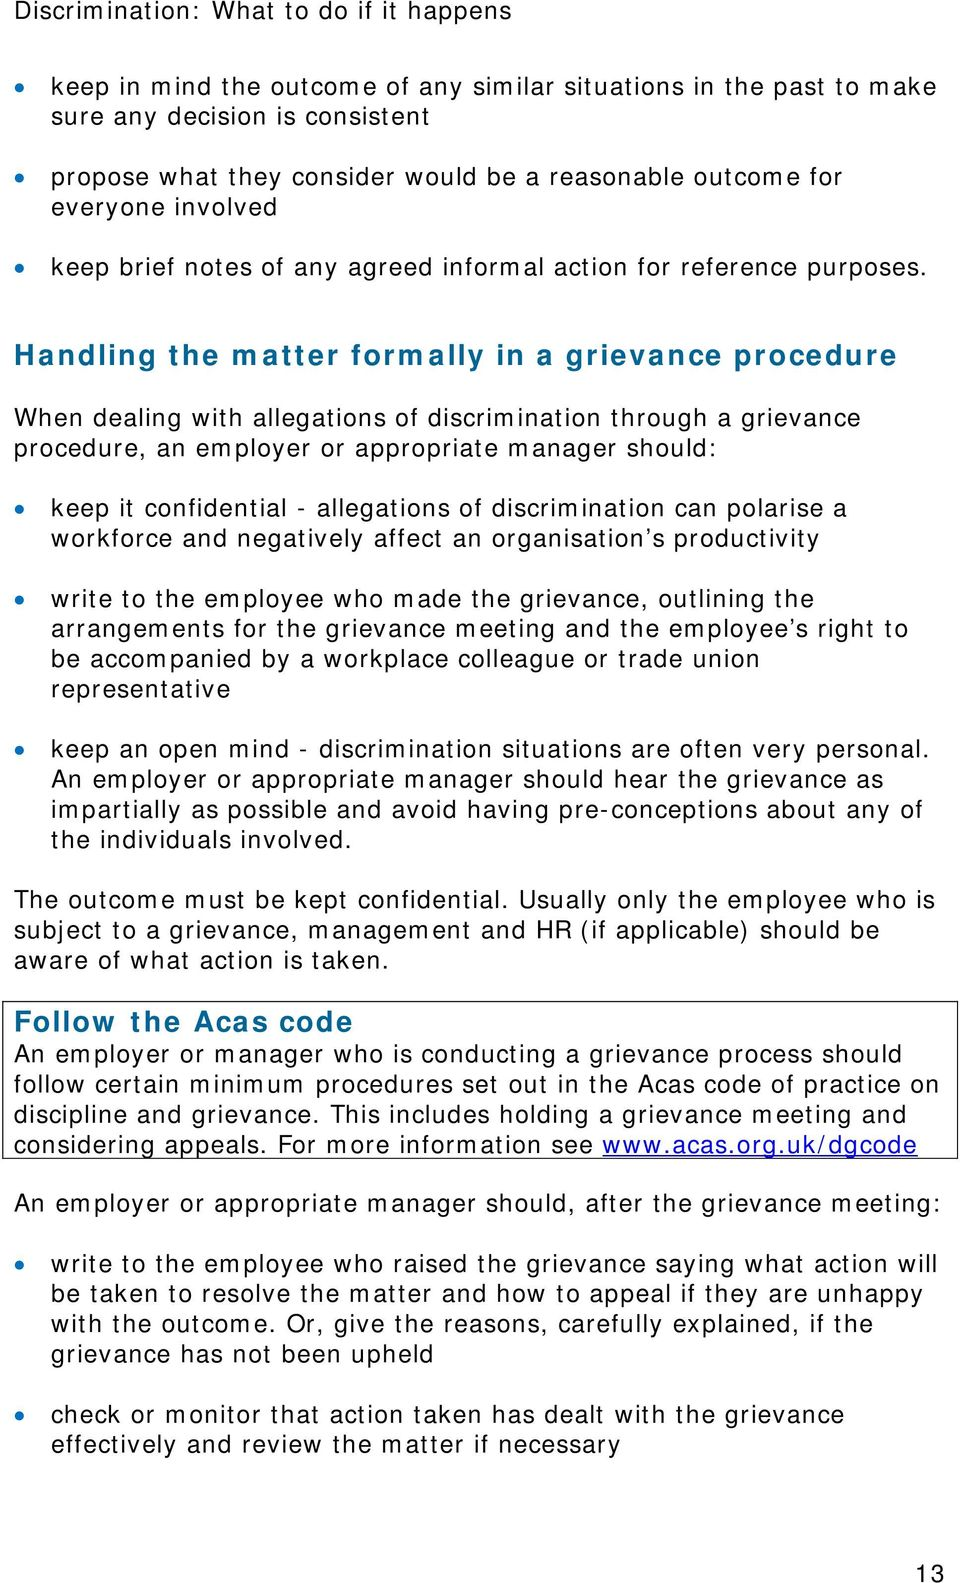 Handling the matter formally in a grievance procedure When dealing with allegations of discrimination through a grievance procedure, an employer or appropriate manager should: keep it confidential -